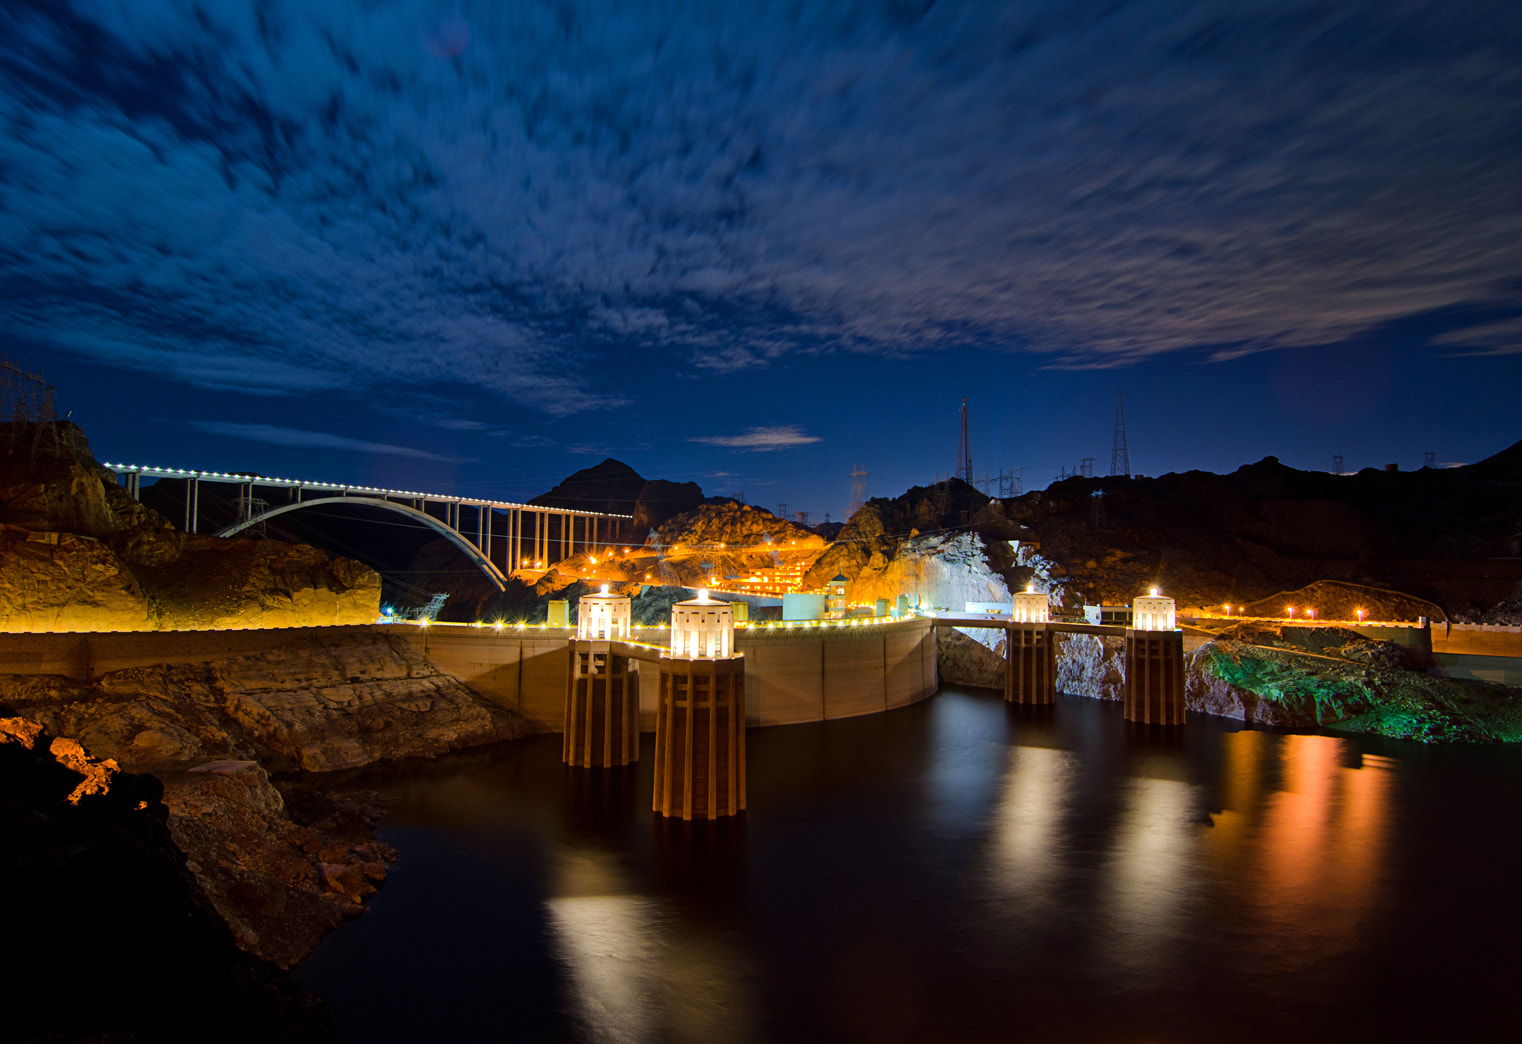 Photograph ©John Torres 2011 | Hoover Dam by John Torres on 500px